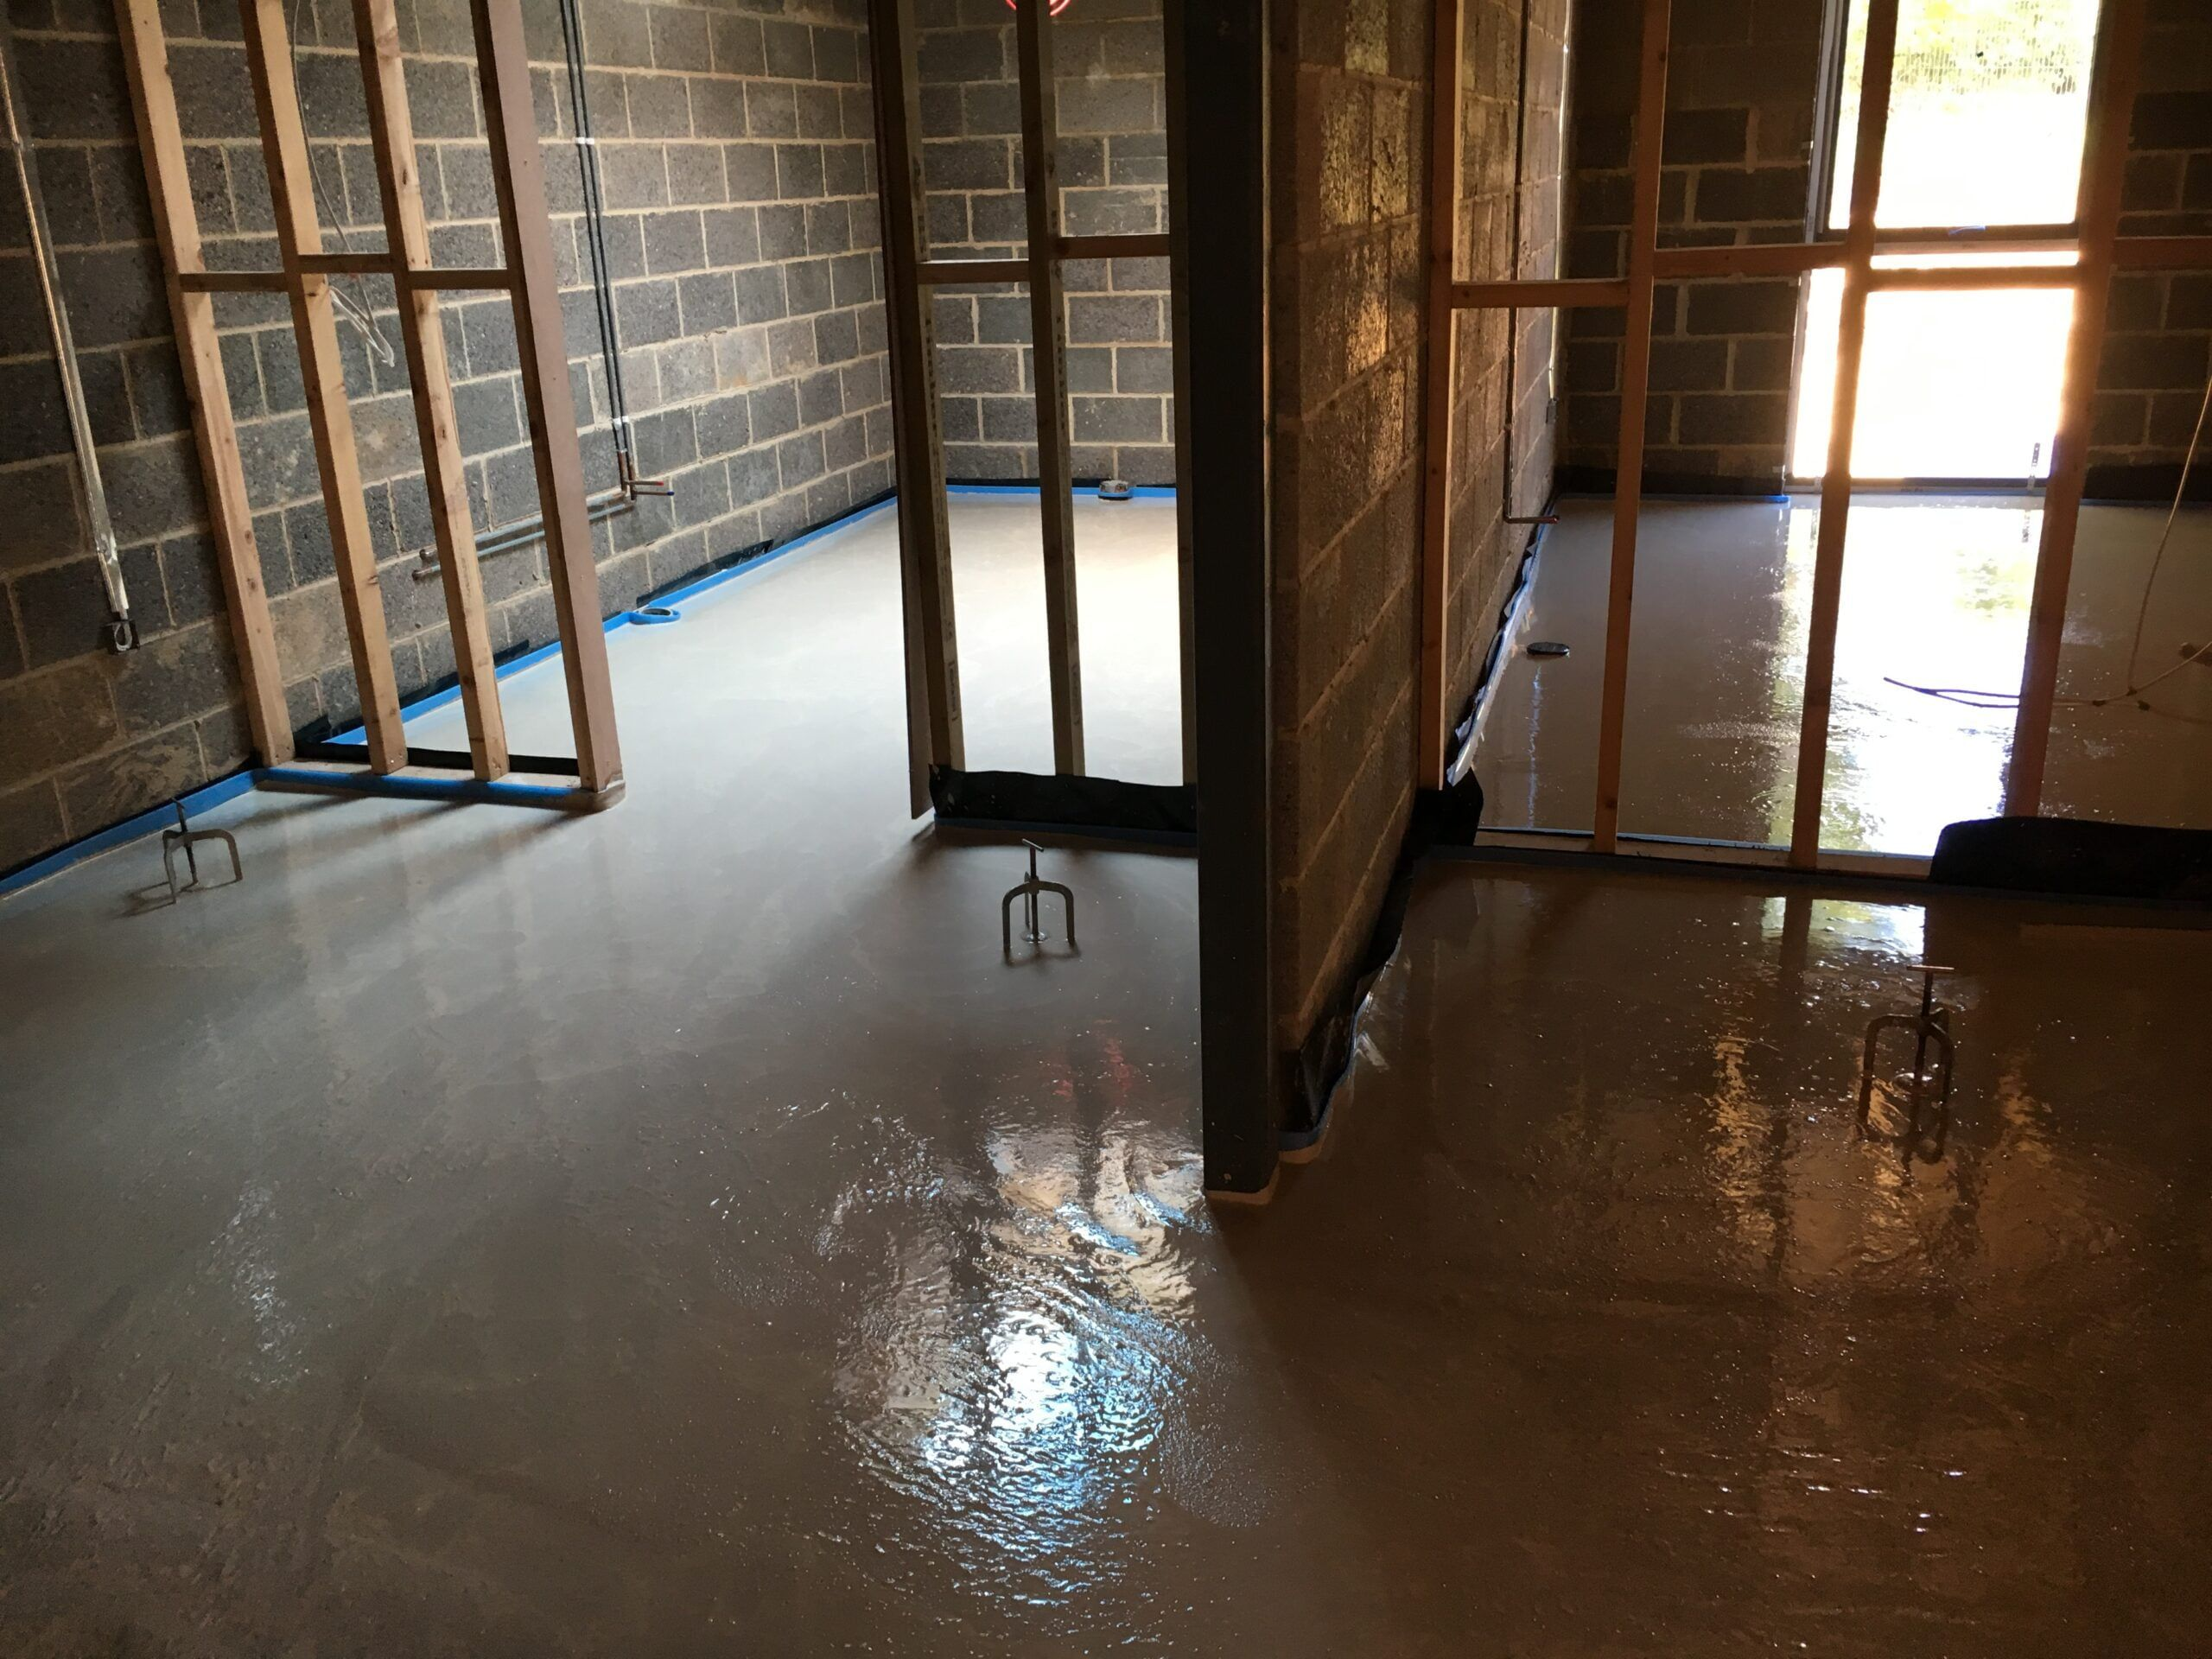 Gypsol floor screed installed on existing wooden floor